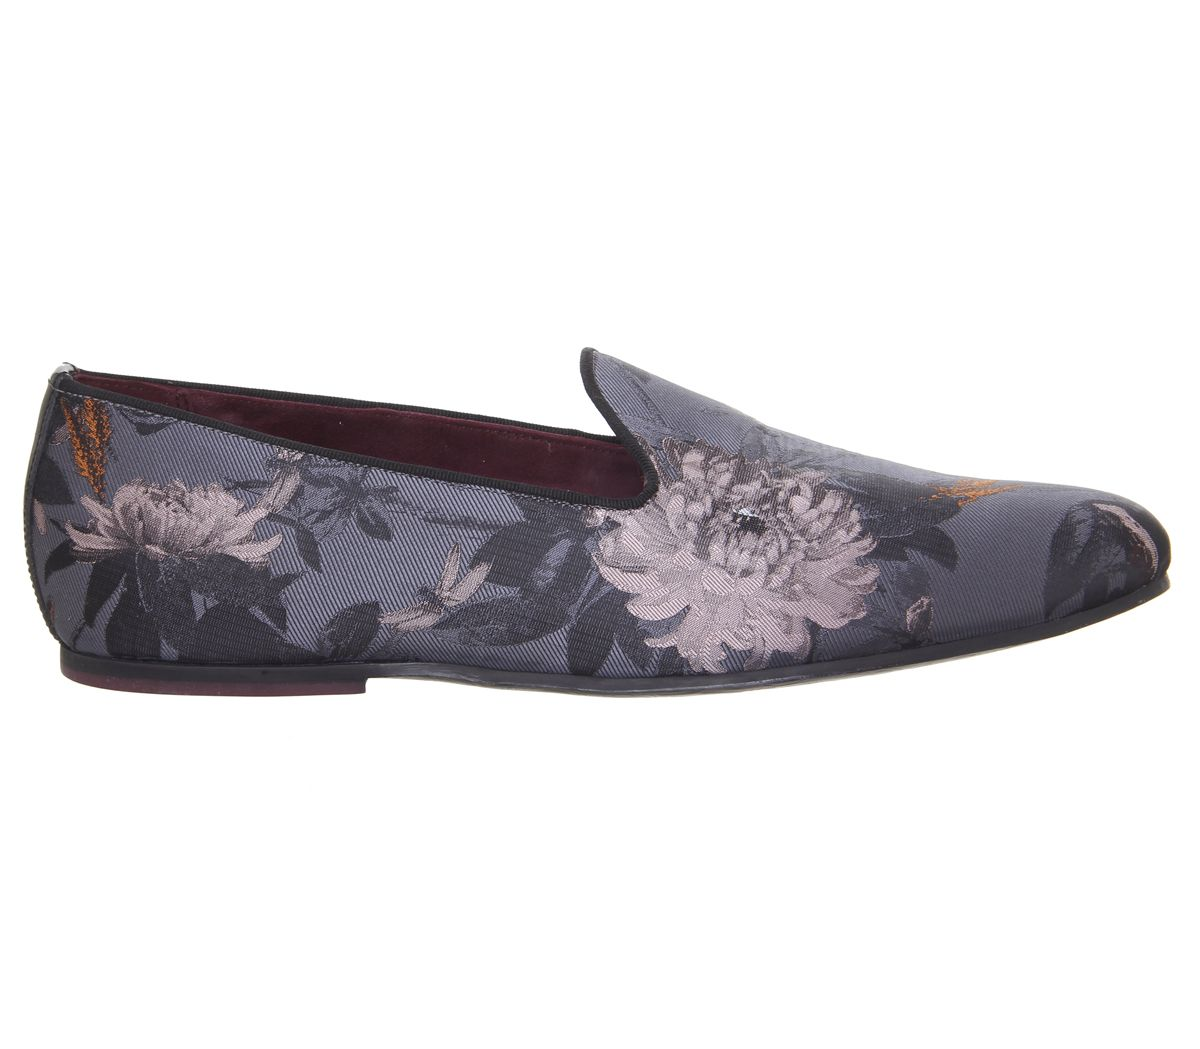 3e8c082f64e74b Ted Baker Vihan Evening Slippers Grey Floral - Smart